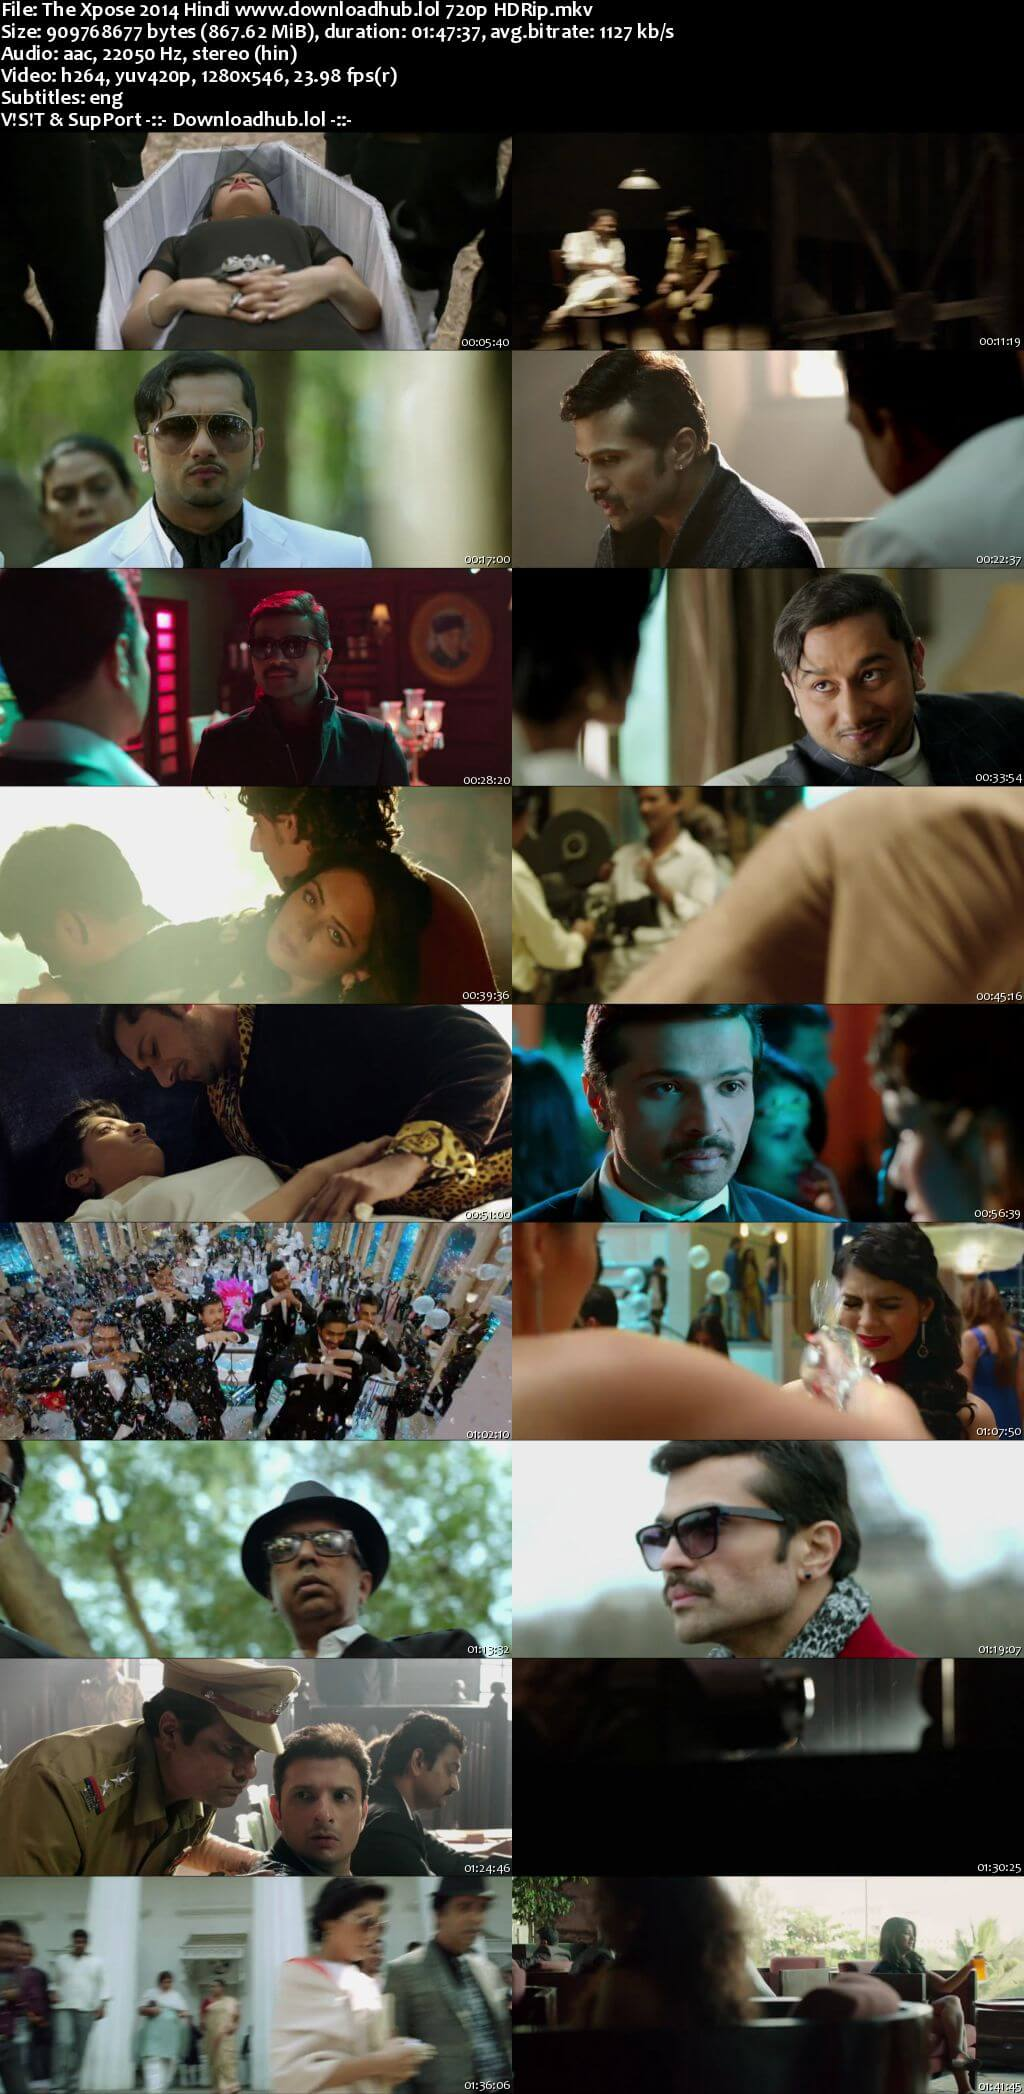 The Xpose 2014 Hindi 720p HDRip ESubs